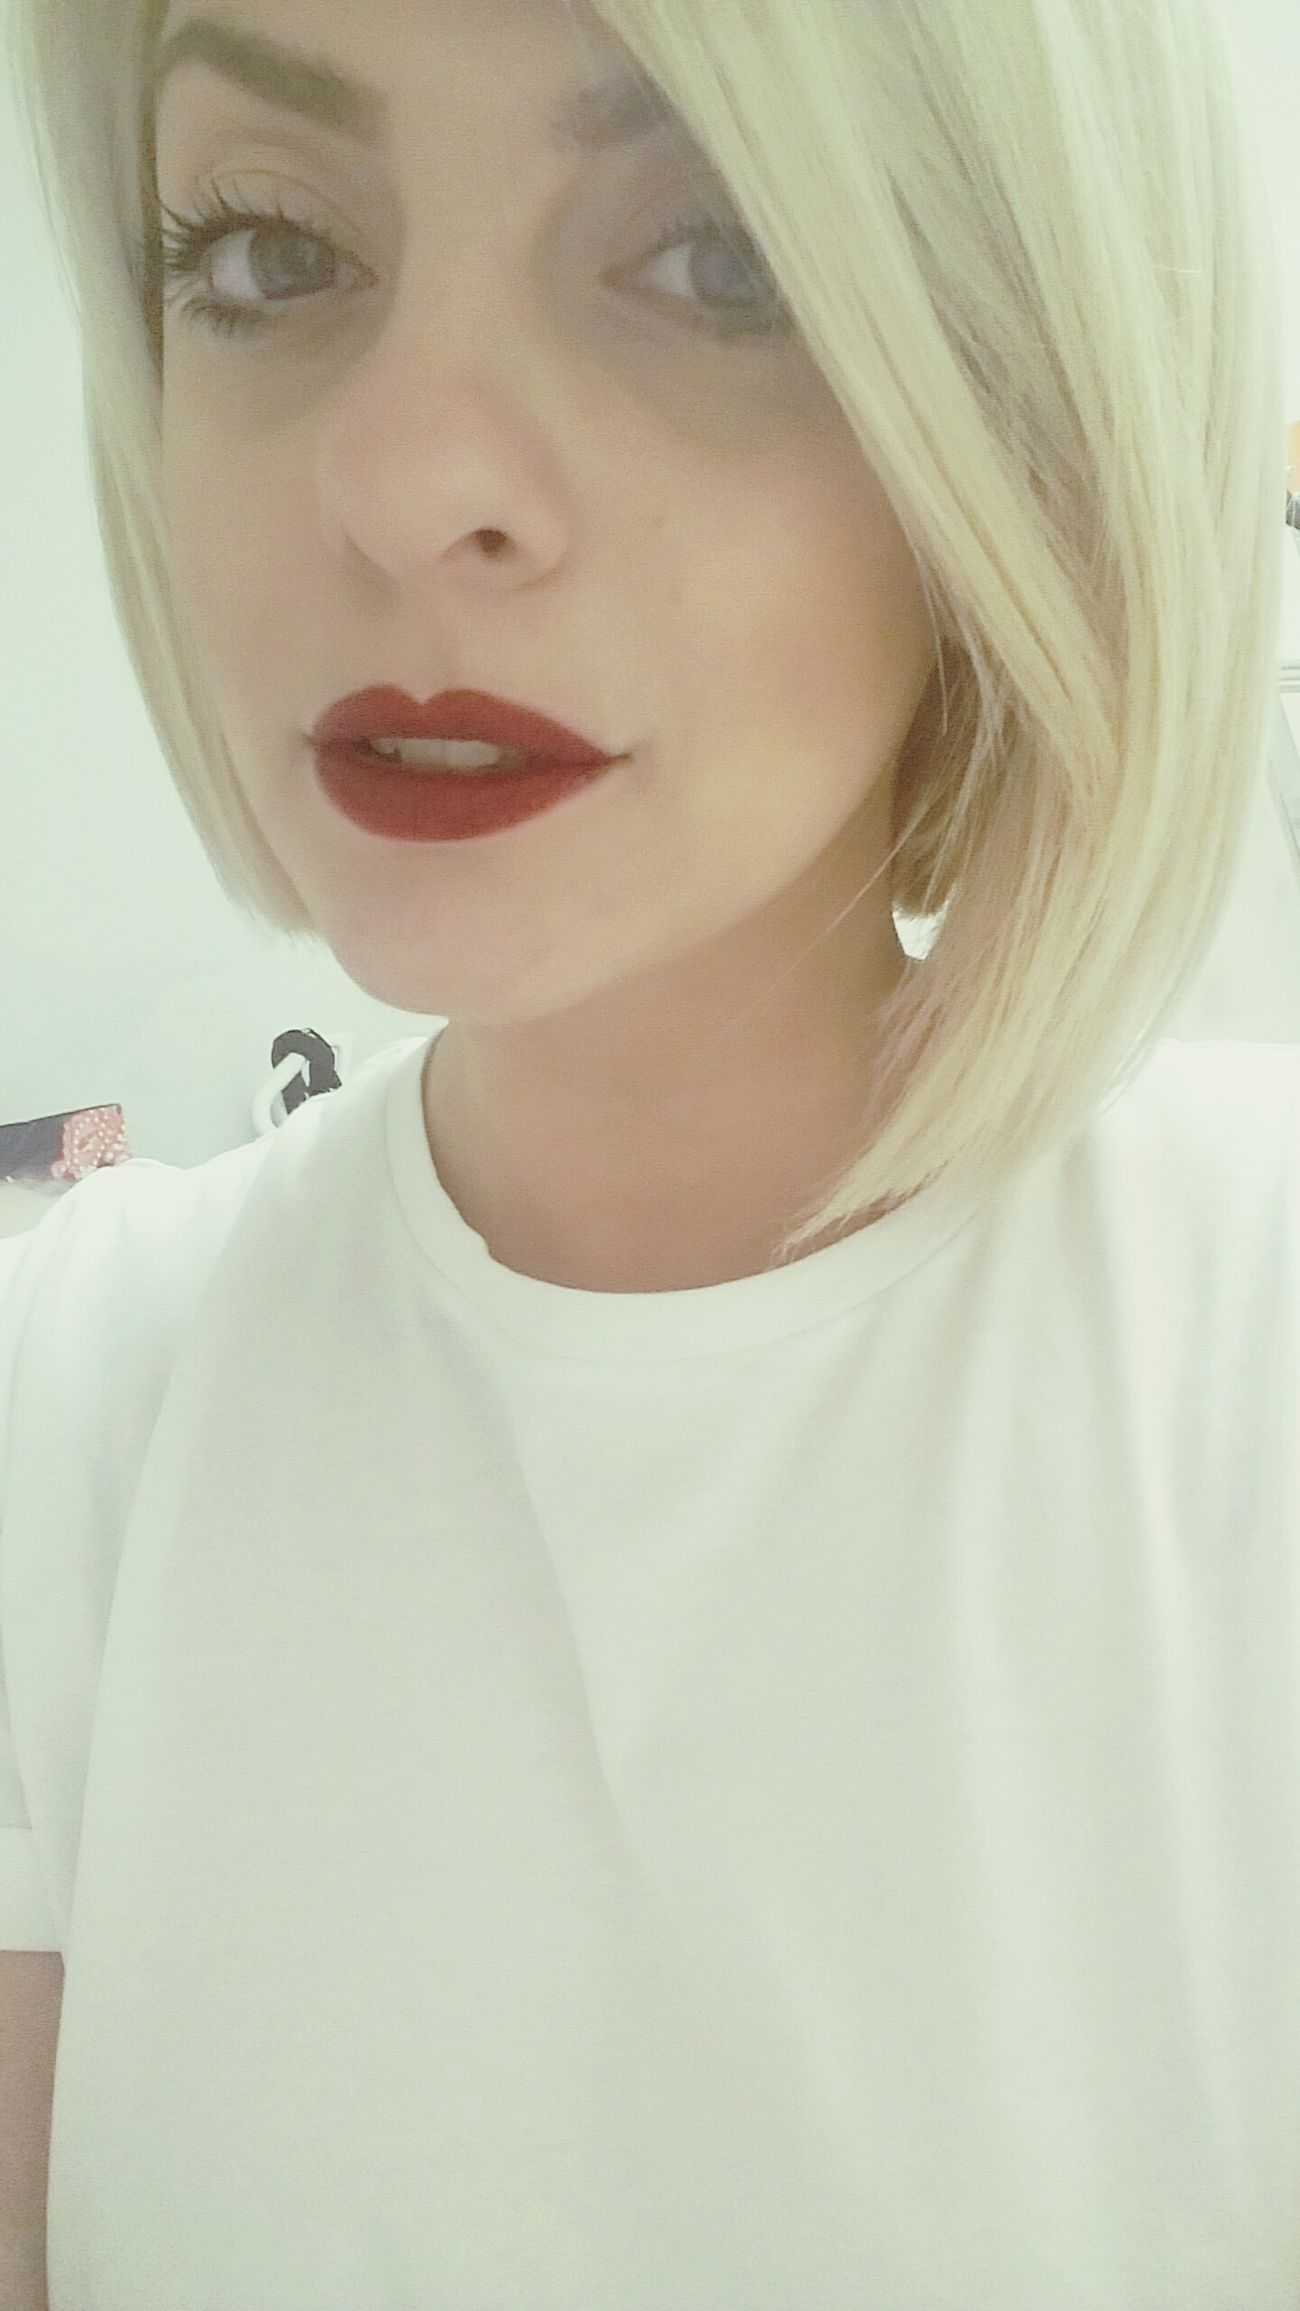 Synday at work.. One Person Blond Hair Portrait Close-up Human Lips Young Adult Me EyeEm EyeEm Best Shots EyeEm Gallery Eyeemphotography Brandnewday Mypointofview Leisure Activity Blonde Red Red Lips White Happy Sunday Woman At Work Picoftheday